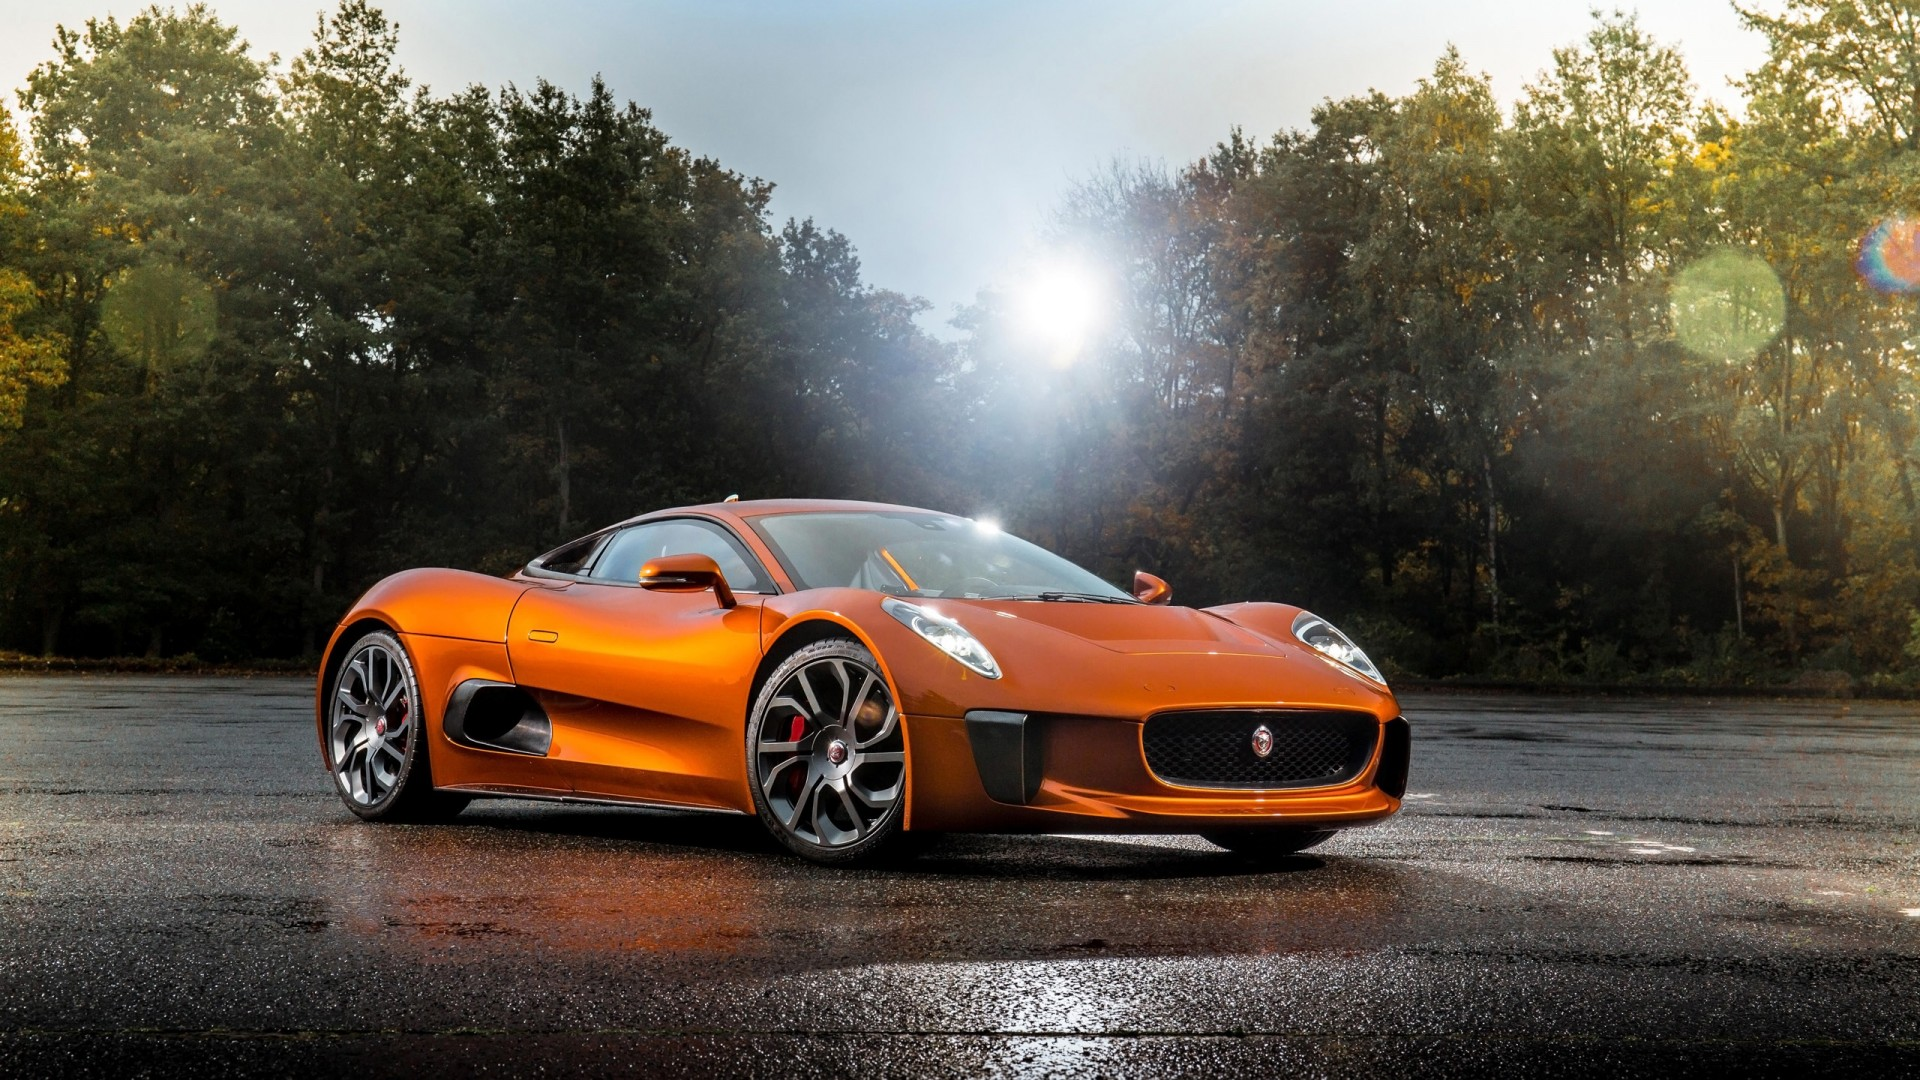 Jaguar Car Wallpaper Wallpapers High Quality: 2015 Jaguar C X75 Wallpaper